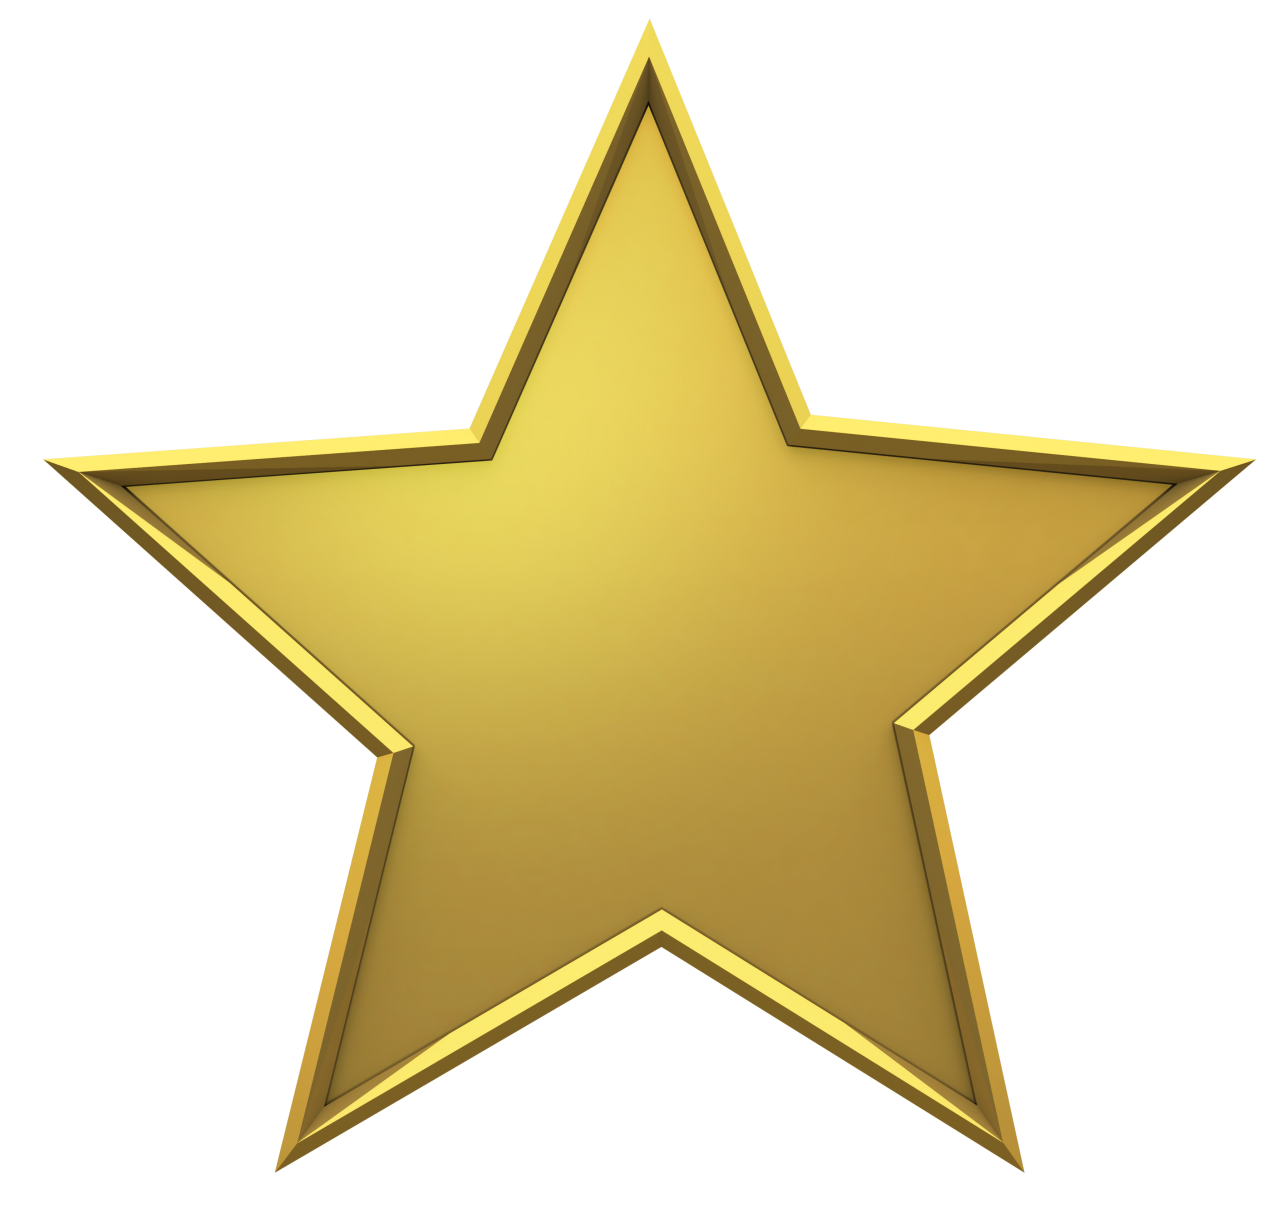 Golden Christmas Star PNG Image - PurePNG   Free ...